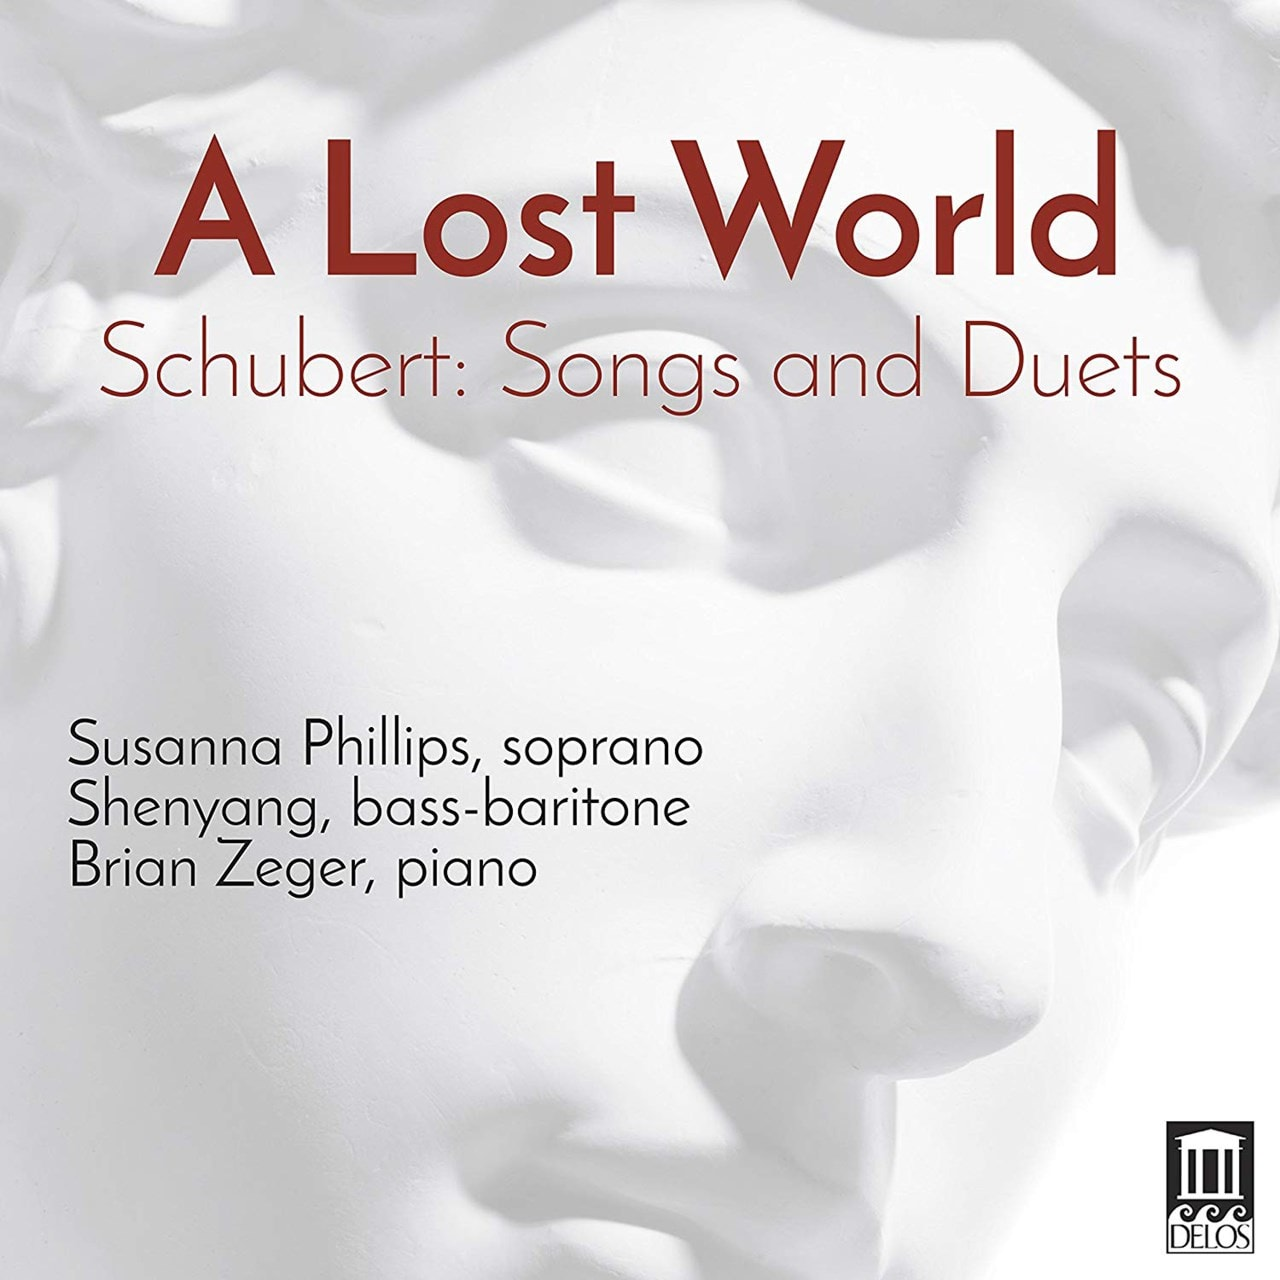 A Lost World: Schubert: Songs and Duets - 1